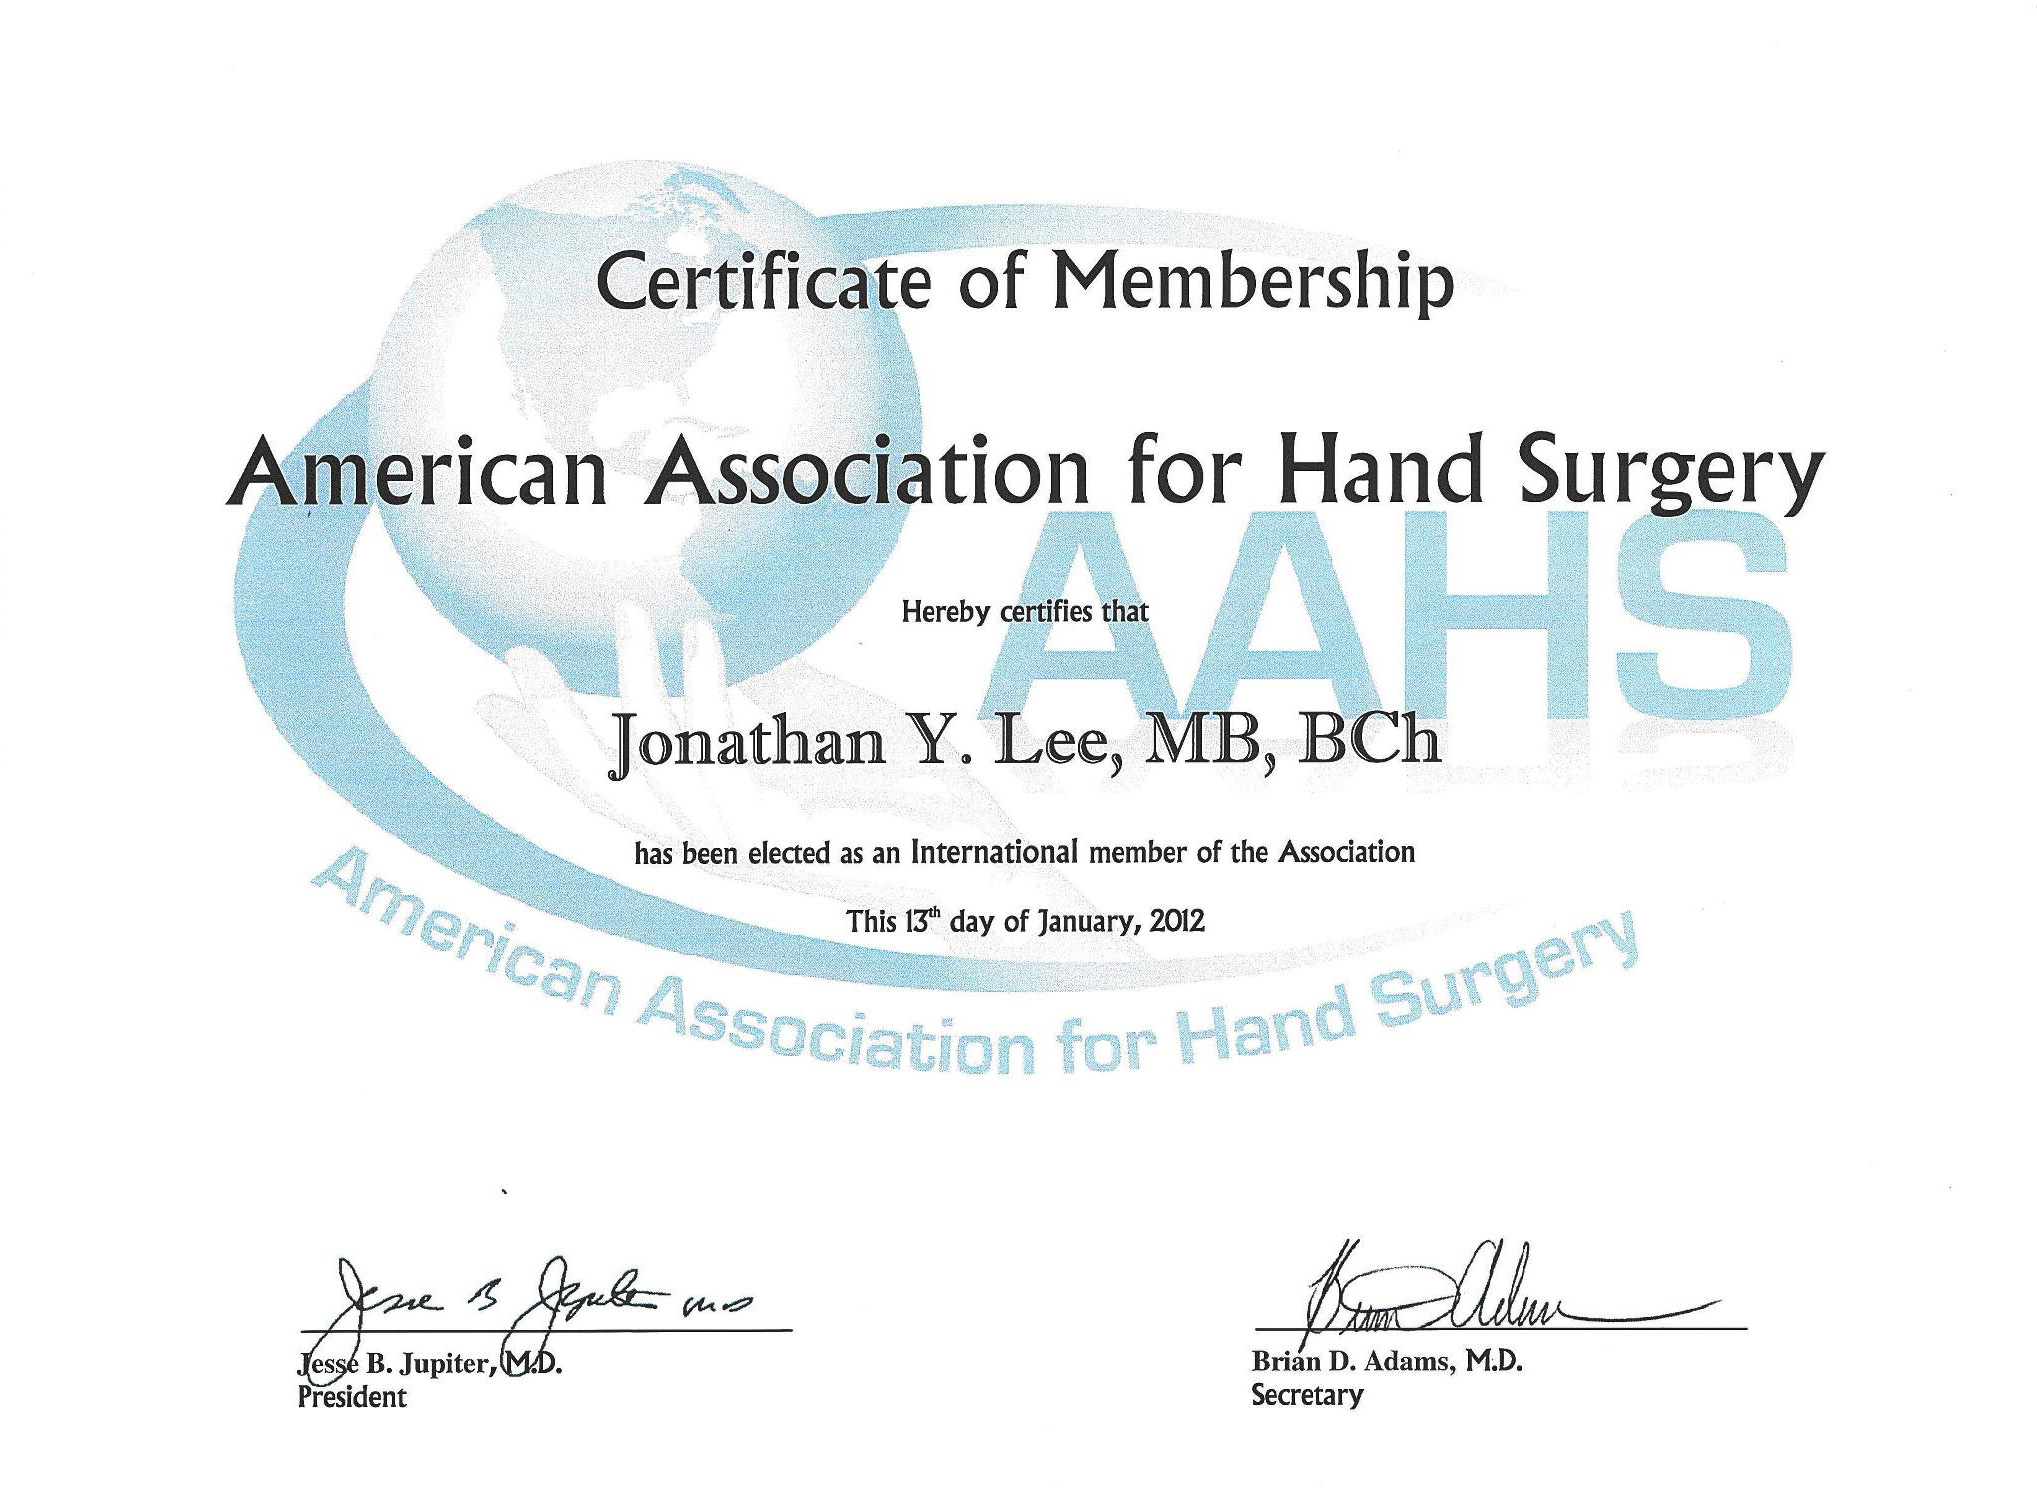 International member of the american association of hand surgery.jpg